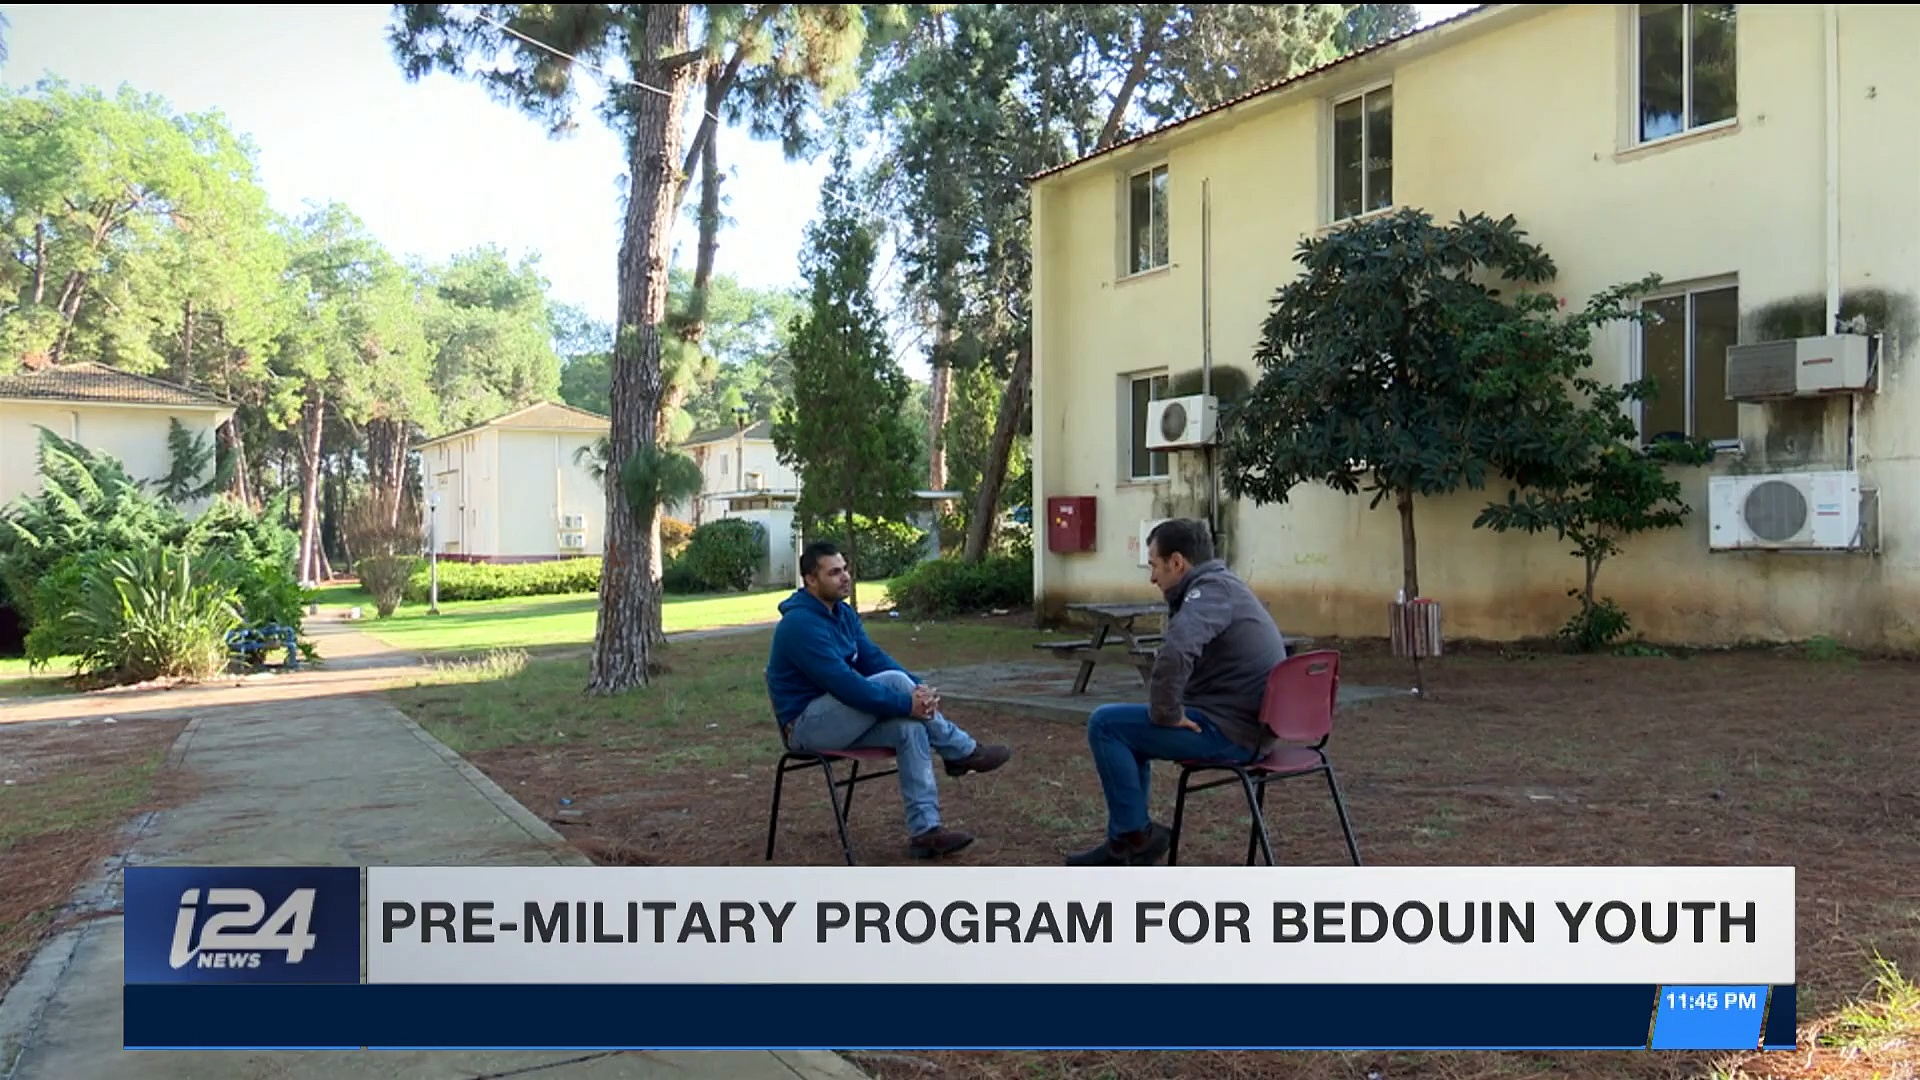 STRICTLY SECURITY | Pre-military program for bedouin youth | Saturday, February 24th 2018